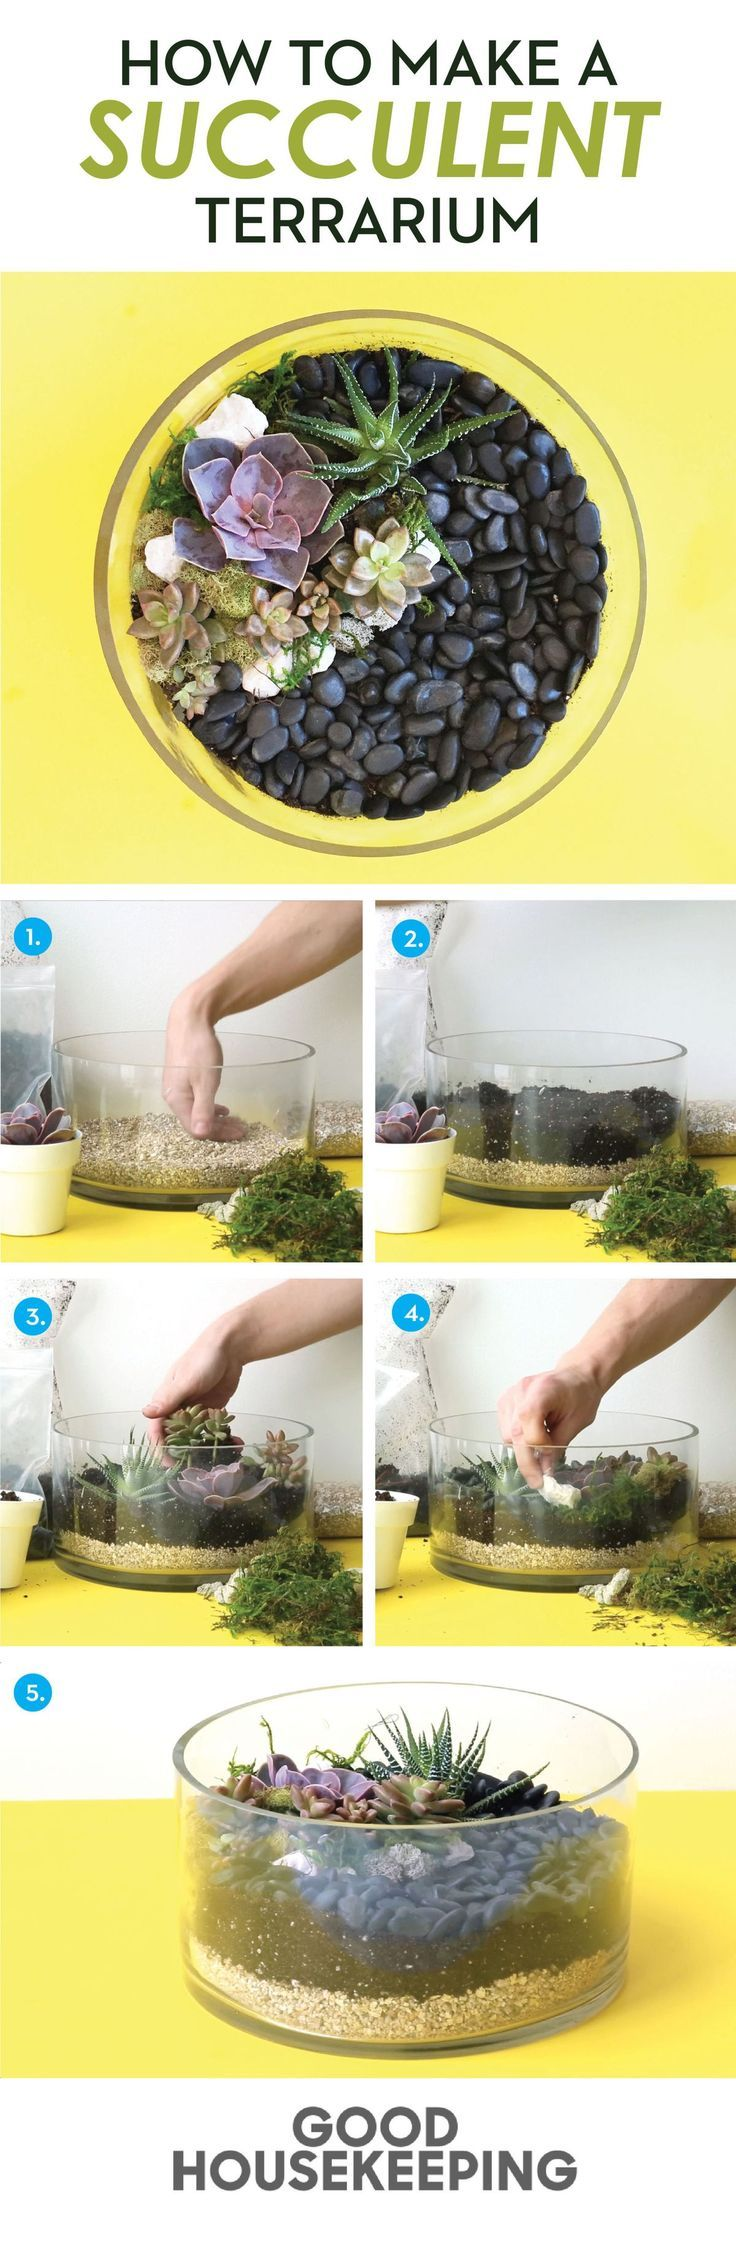 Make your own succulent garden by layering sand, soil, and stone. | Good Housekeeping